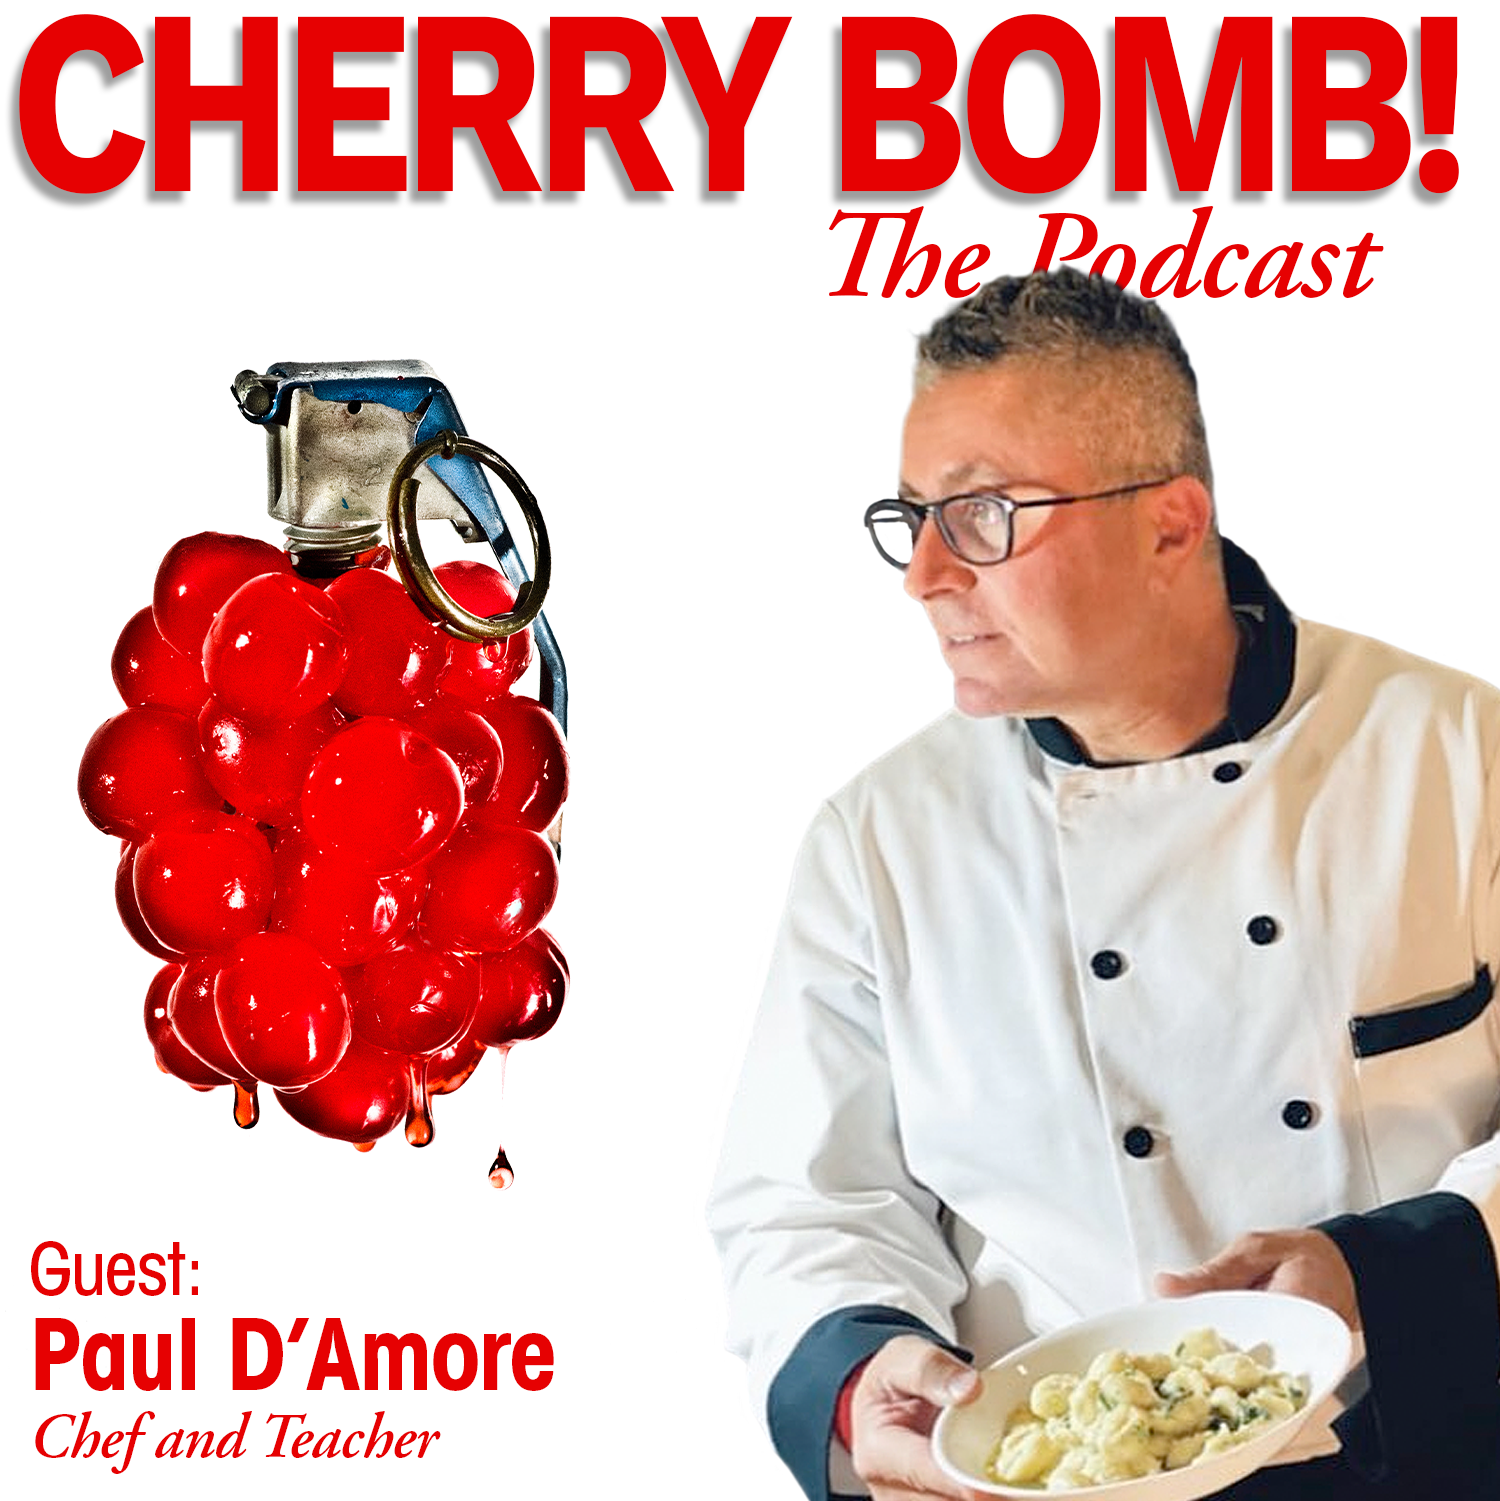 Chef Paul D'Amore on Cherry Bomb! The Podcast